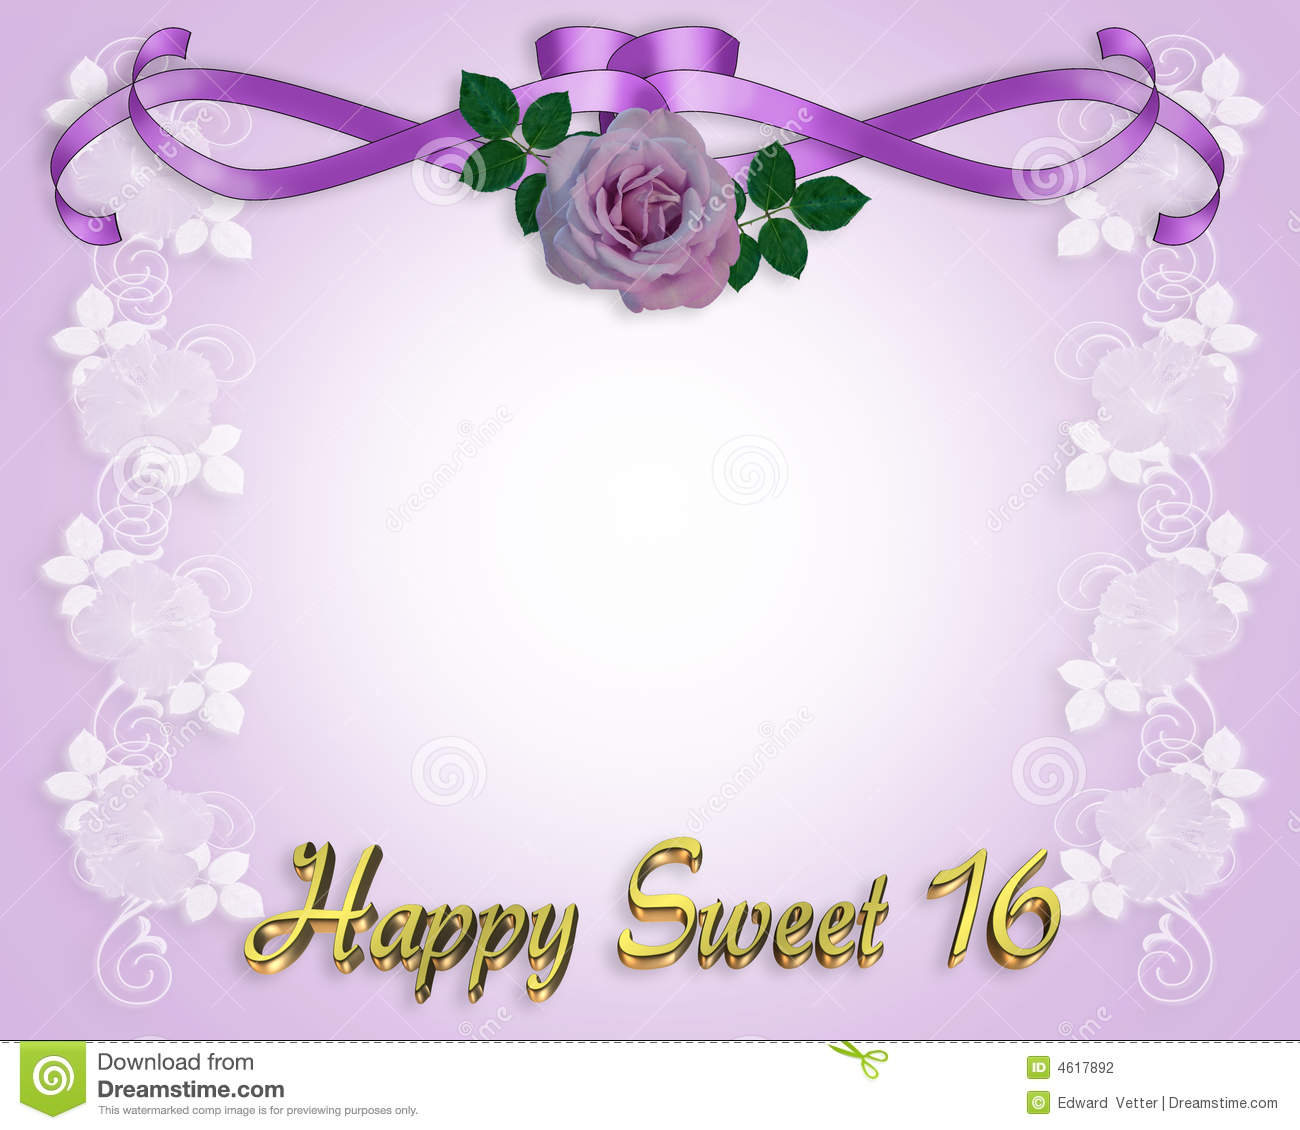 Sweet 16 Birthday Background Clipart - Clipart Kid